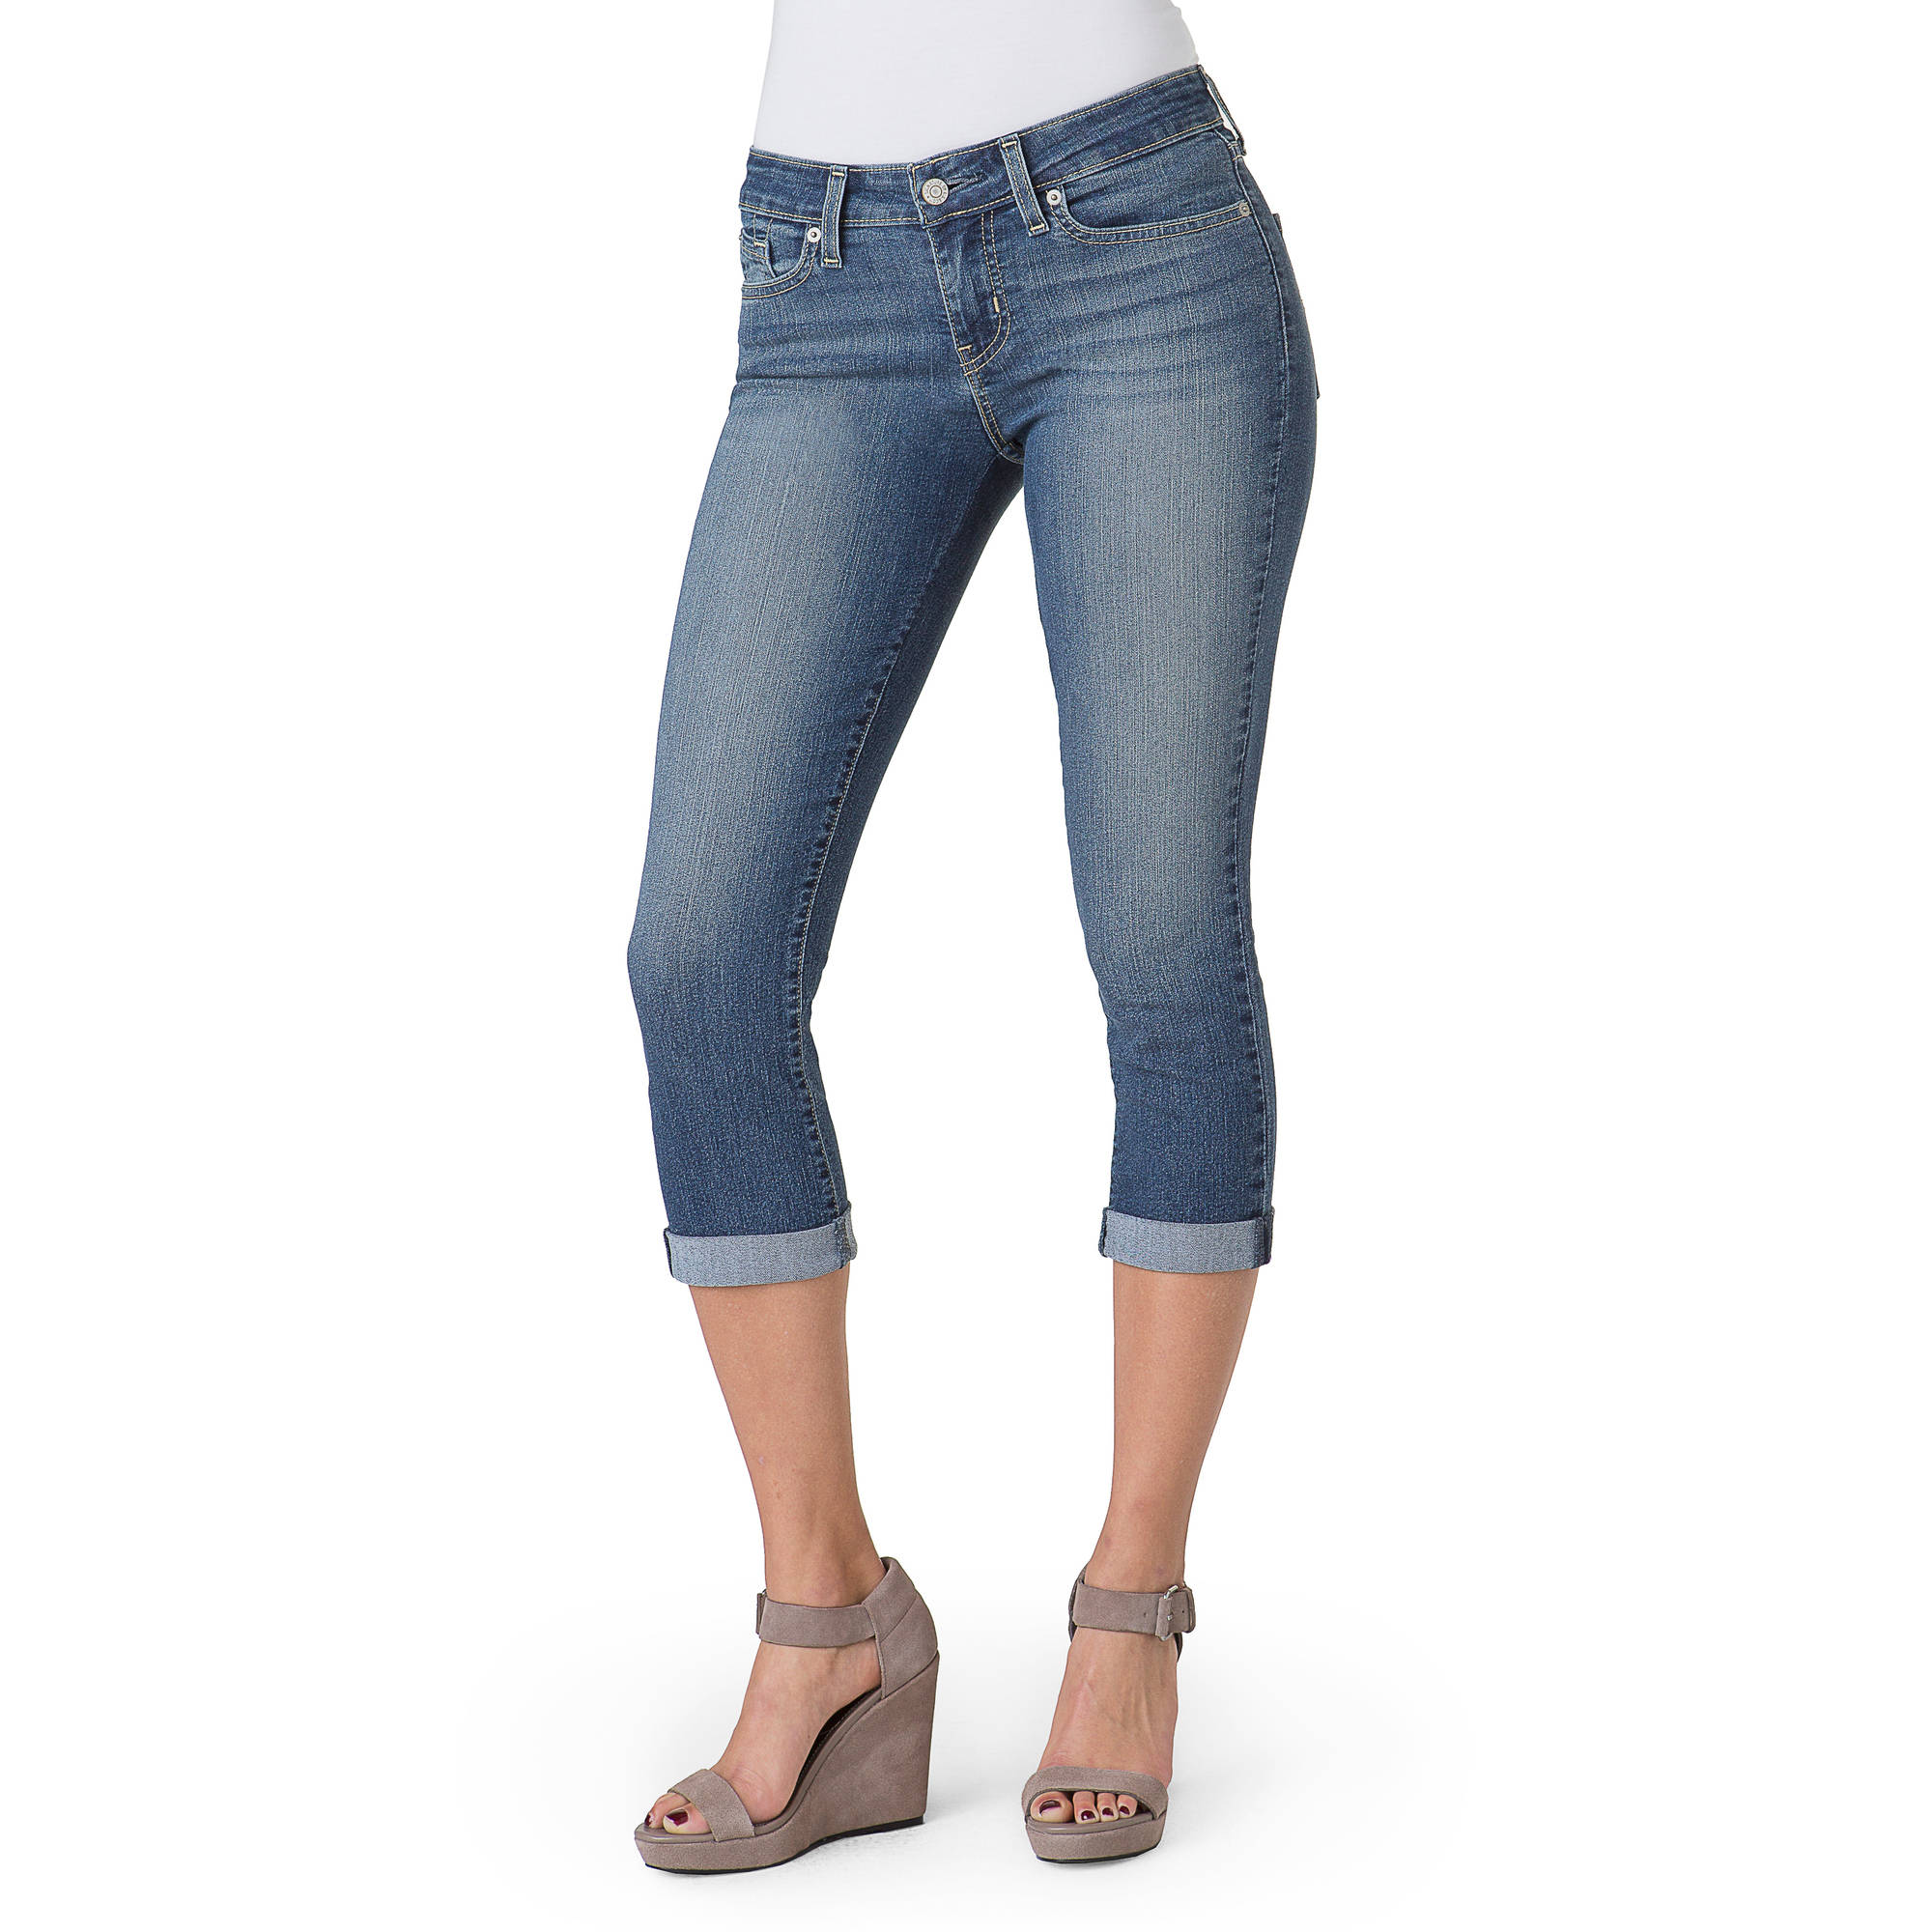 pest analysis on levis jeans Macroenvironmental factors affecting the clothing industry are those an aging population may increase the demand for larger jeans and [swot analysis.